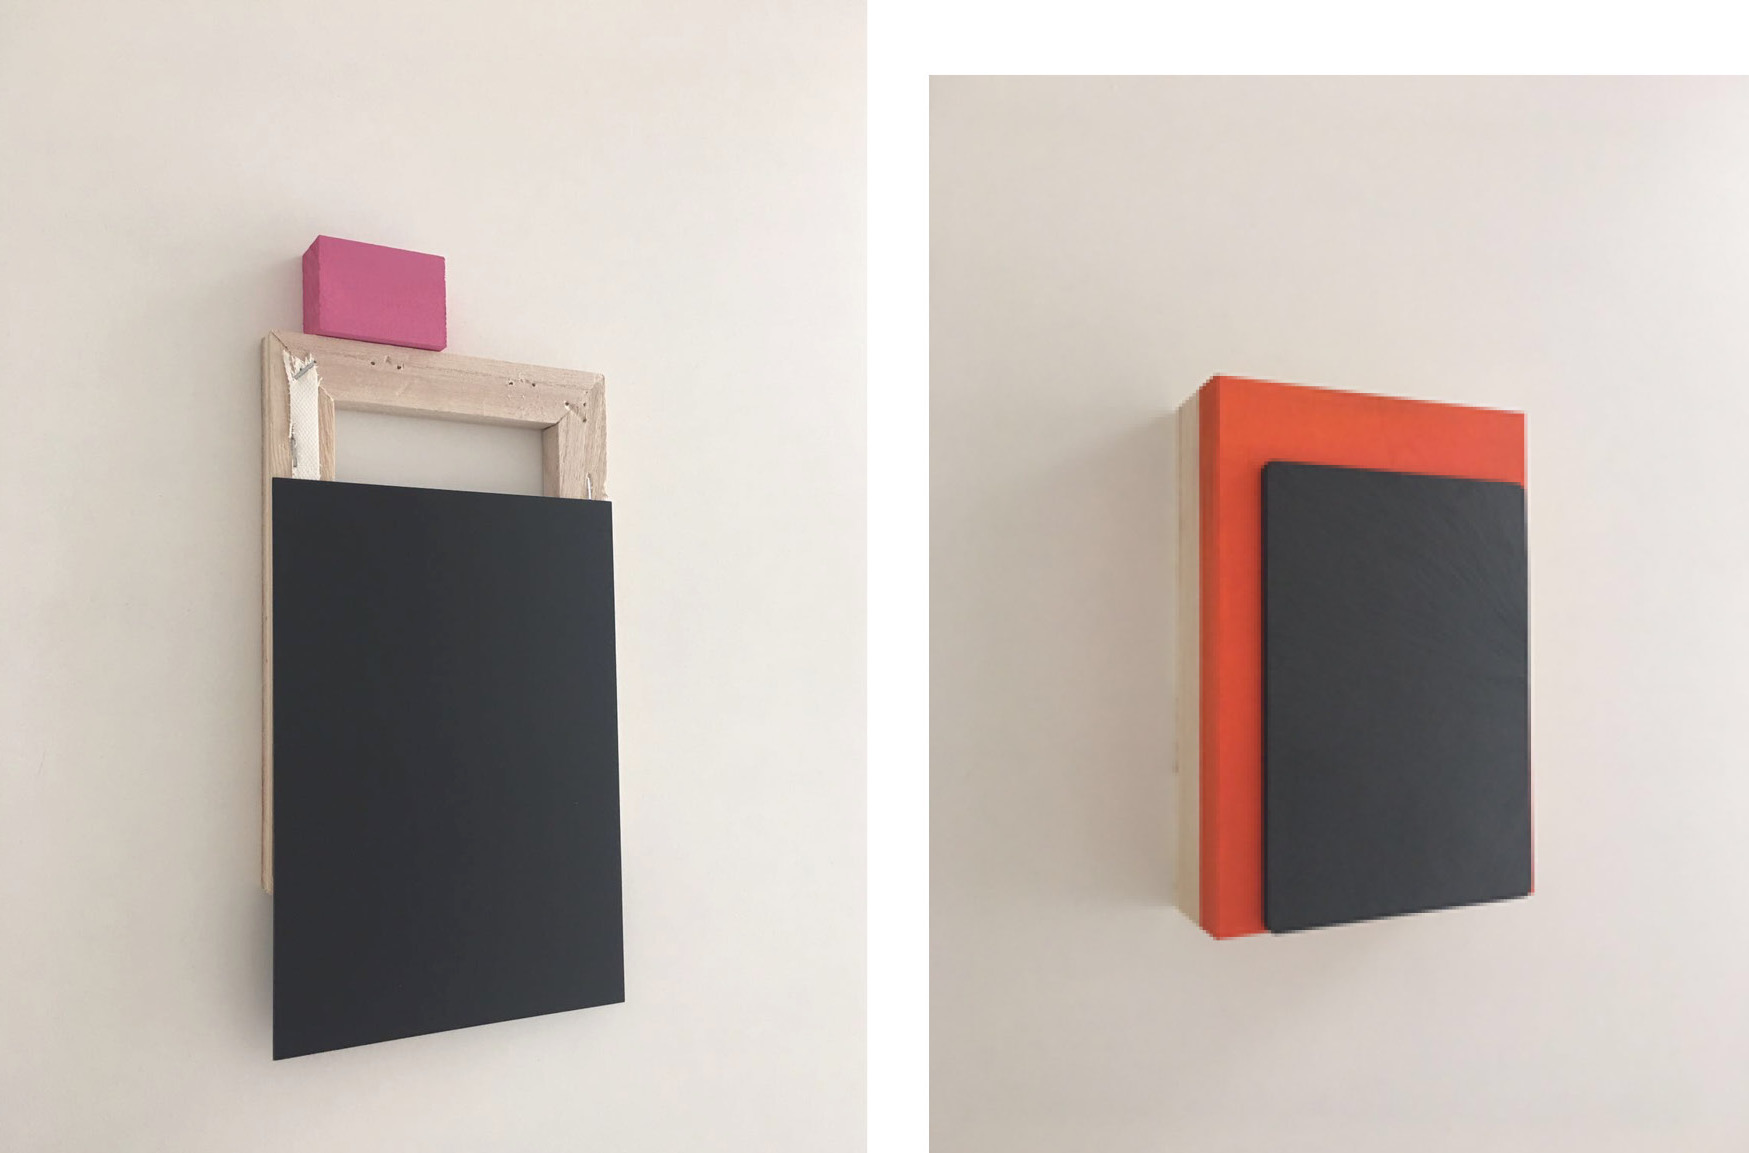 Untitled V (bis), 26 x 15 x 2 cm (2017) Acrylic, wood and plexiglass on wooden frame (l) & Orange (Triptych), 18.7 x 12.8 x 3.5 cm (2017) Acrylic and slate board on handmade Japanese wooden box